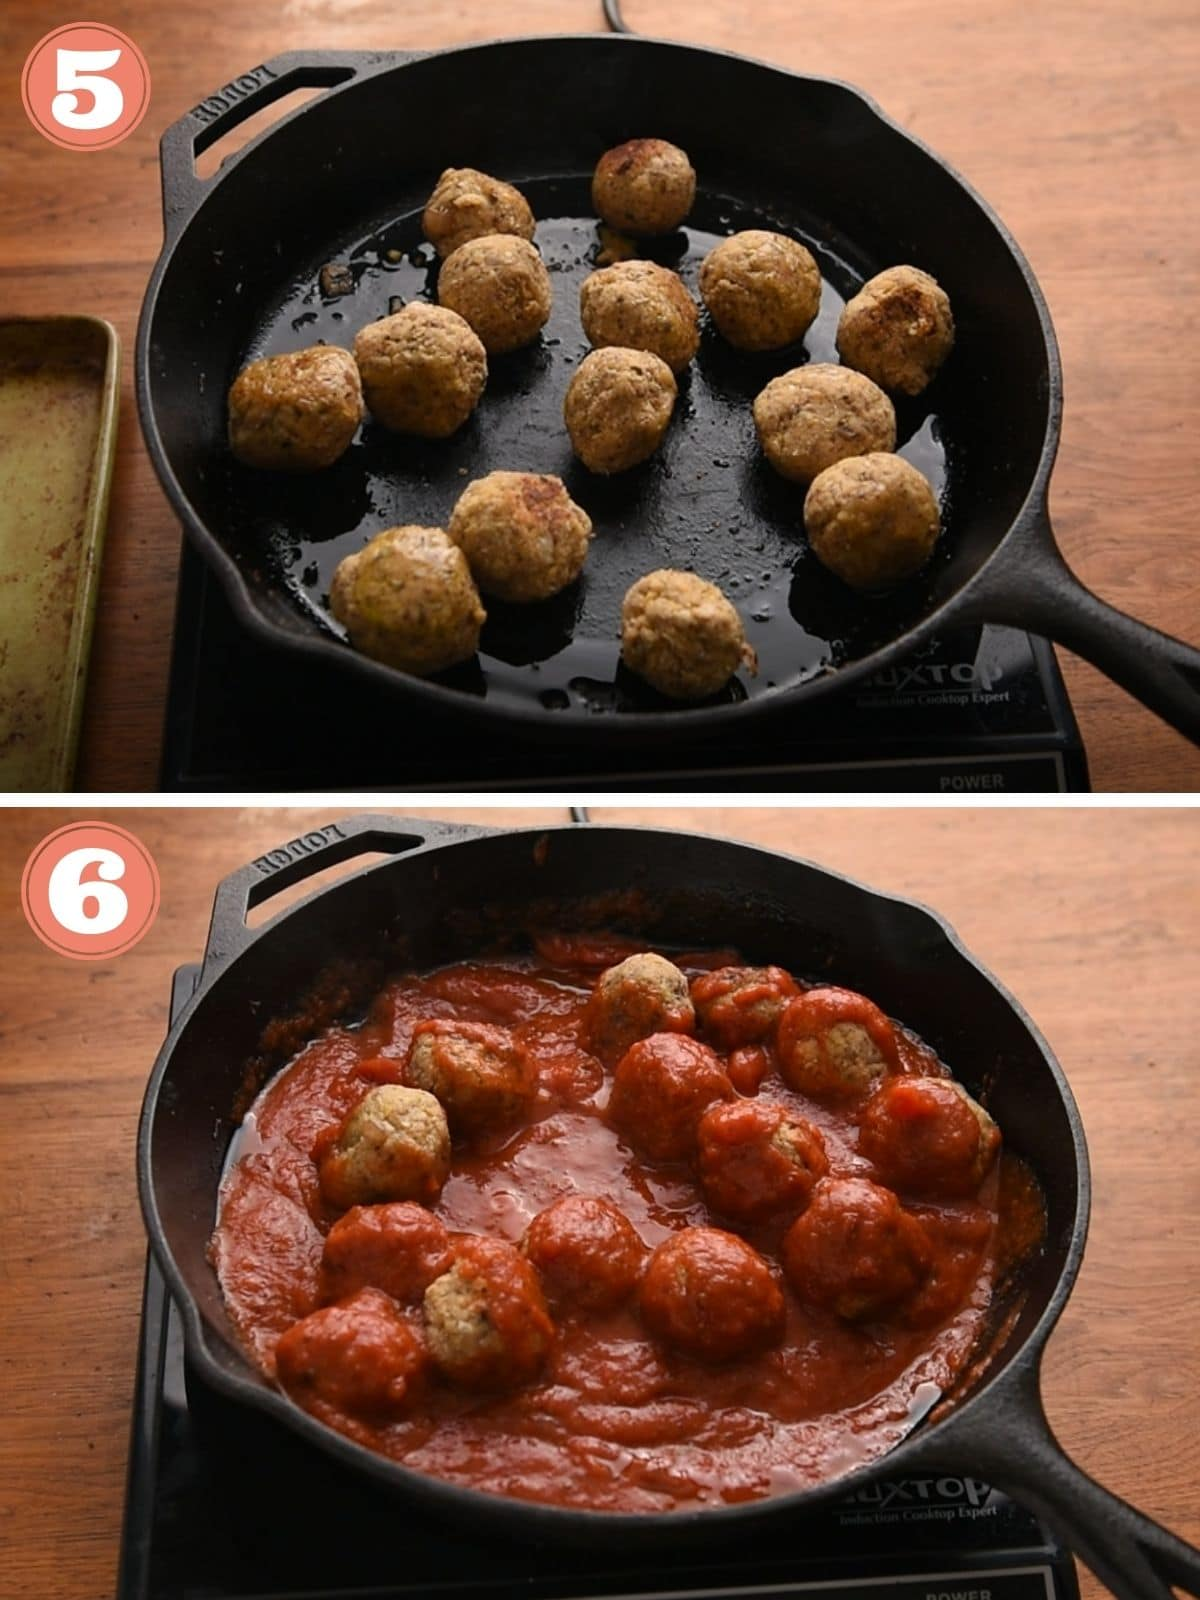 Steps 5 and 6 to pan fry meatballs